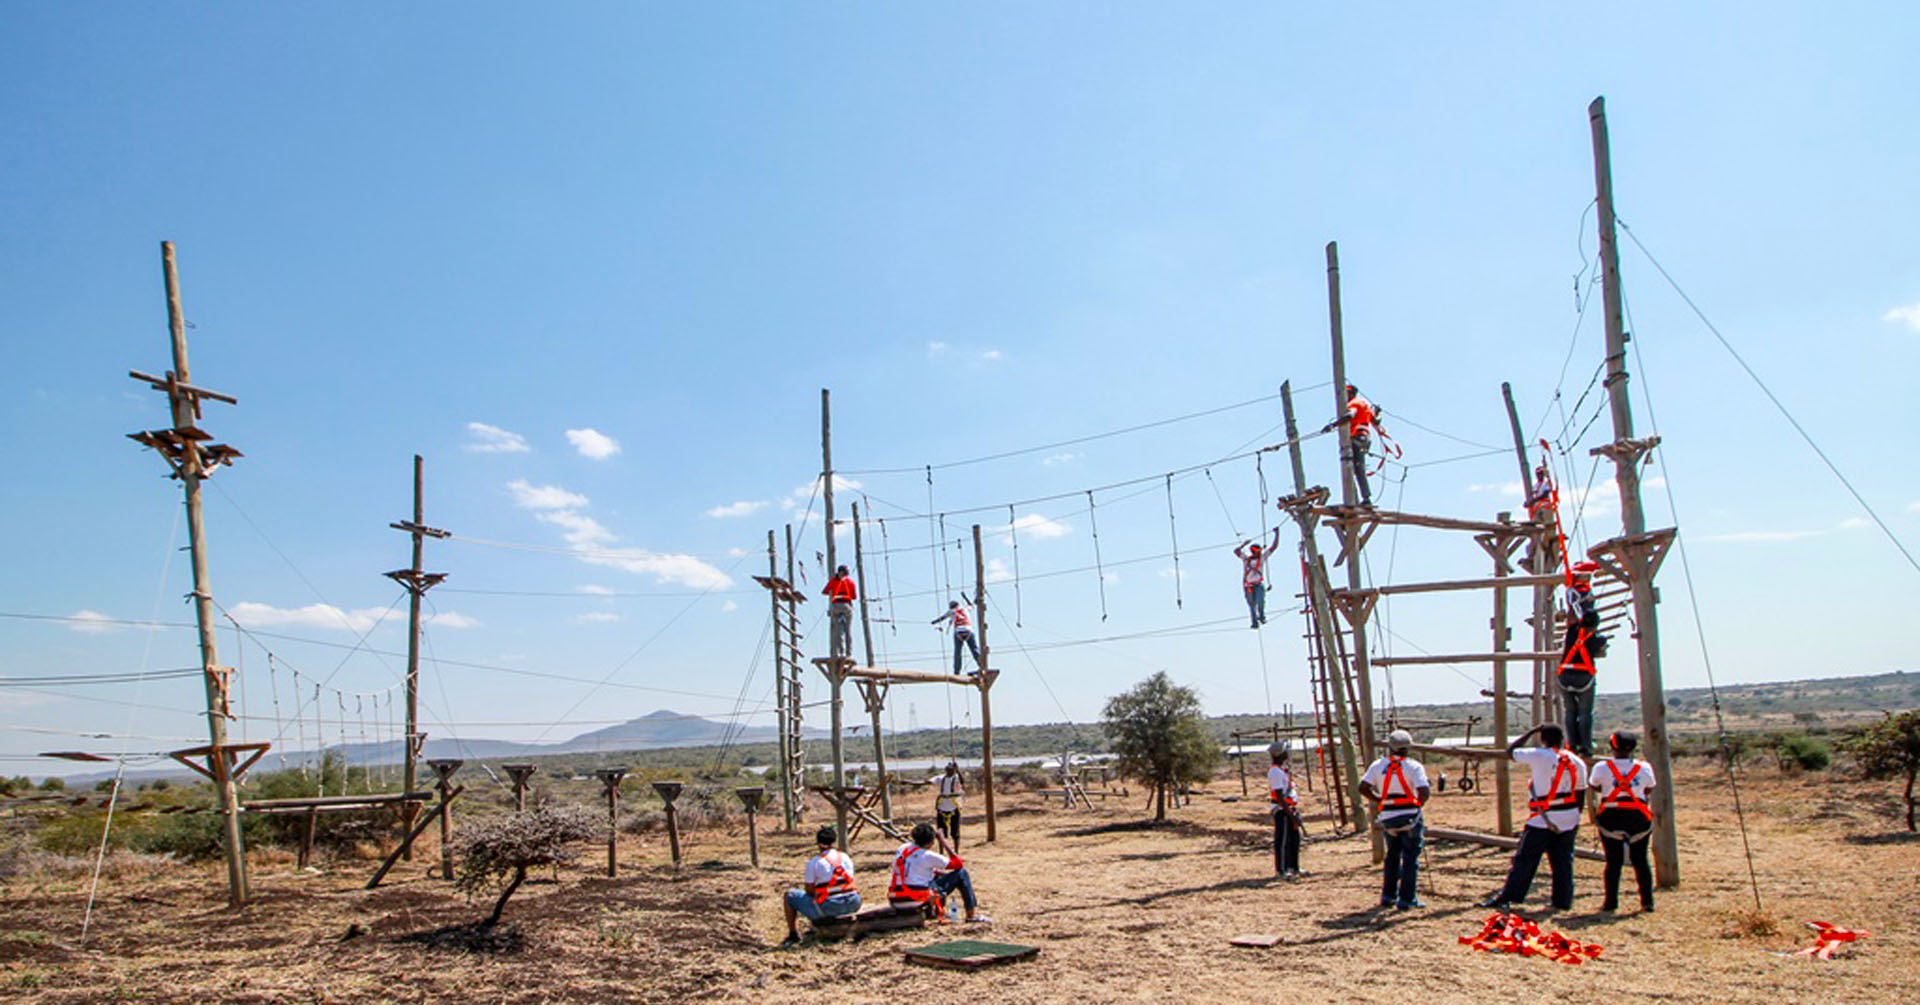 Team_Quest_Kenya_Kenergy_Team_Building_In_Kenya_High_Ropes